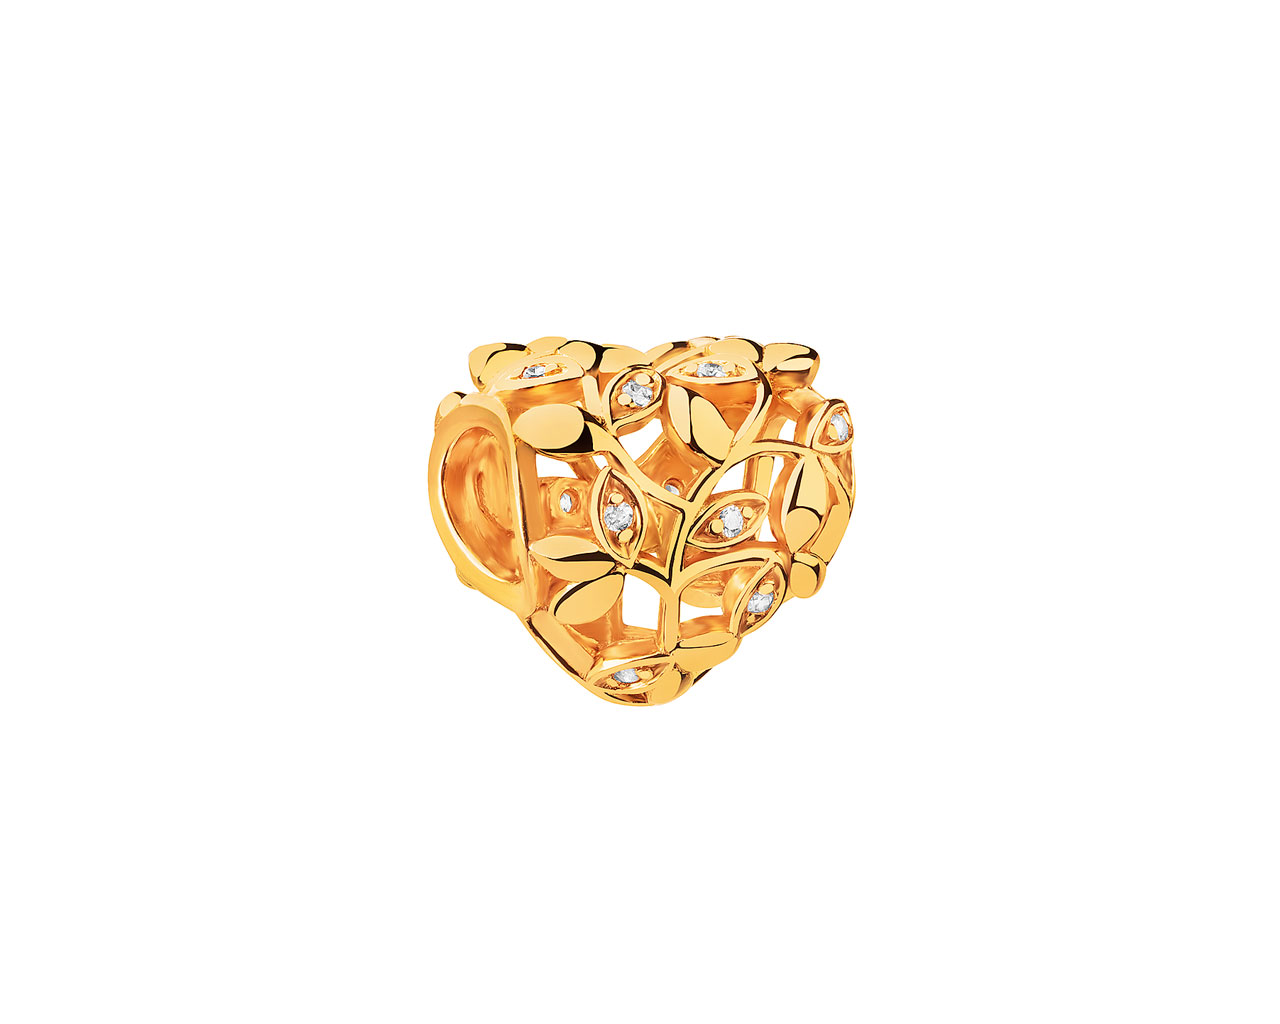 Gold-Plated Silver Pendant with Cubic Zirconia